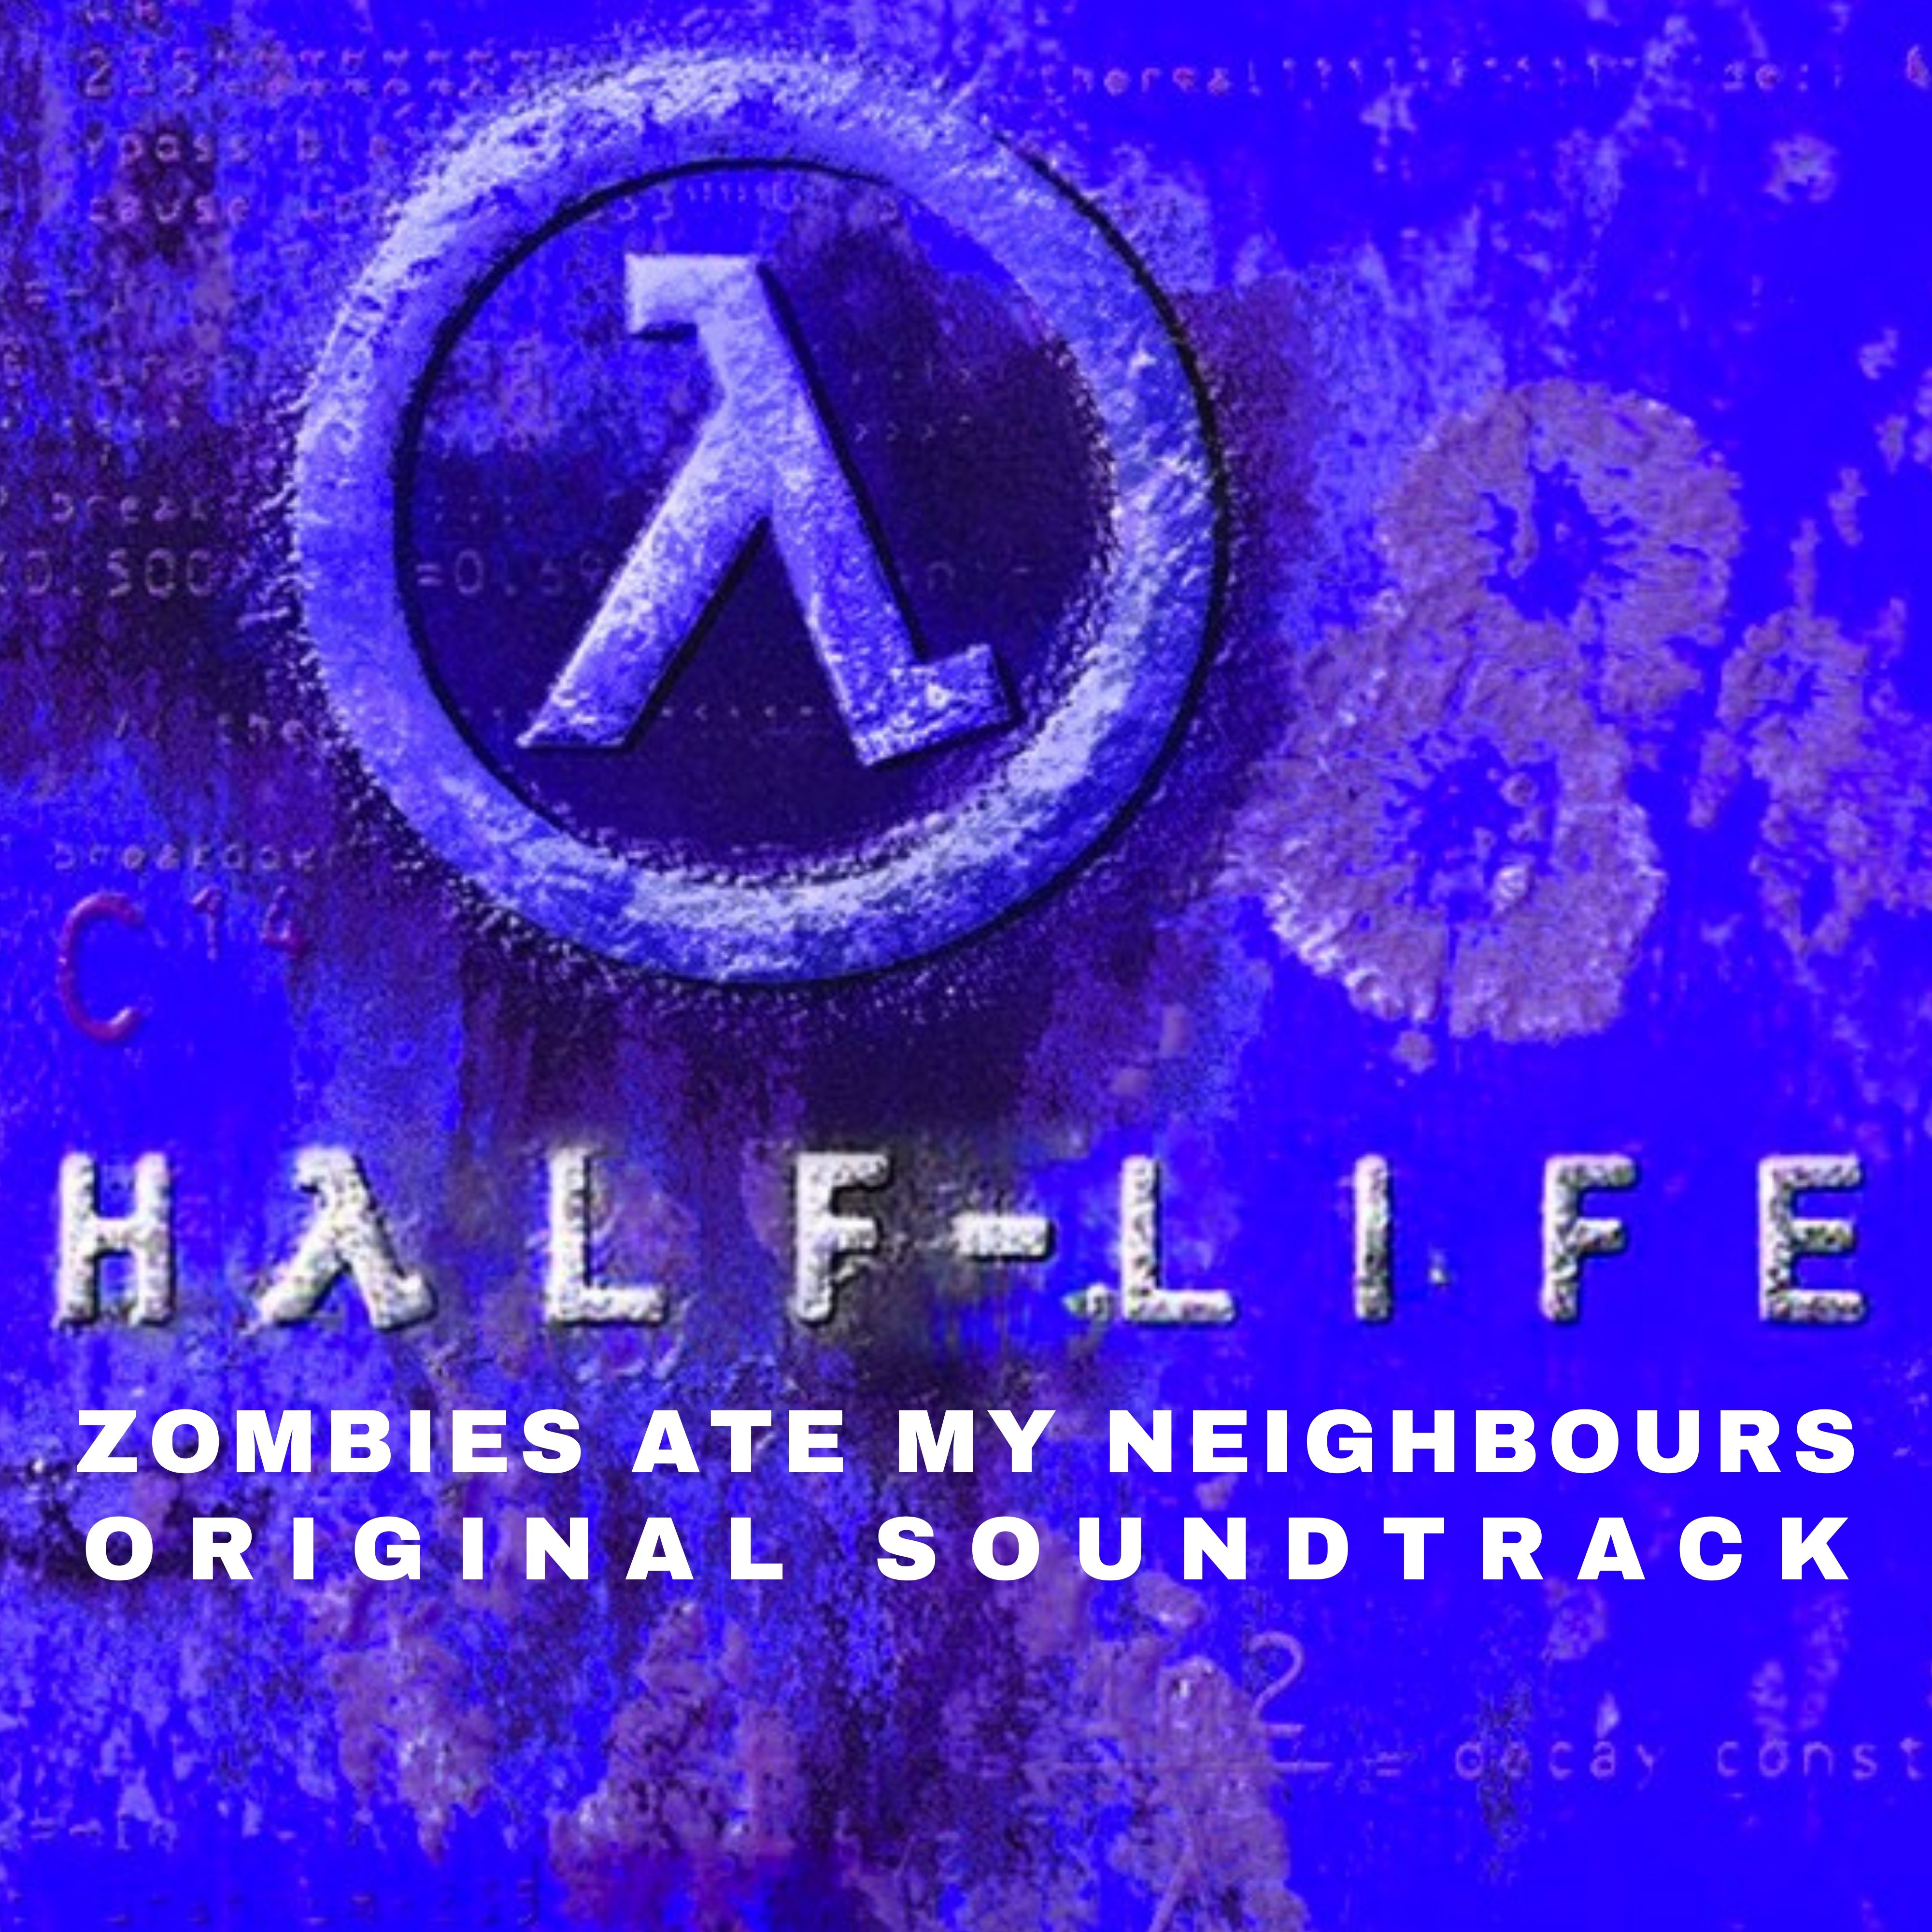 ZOMBIES ATE MY NEIGHBOURS ost